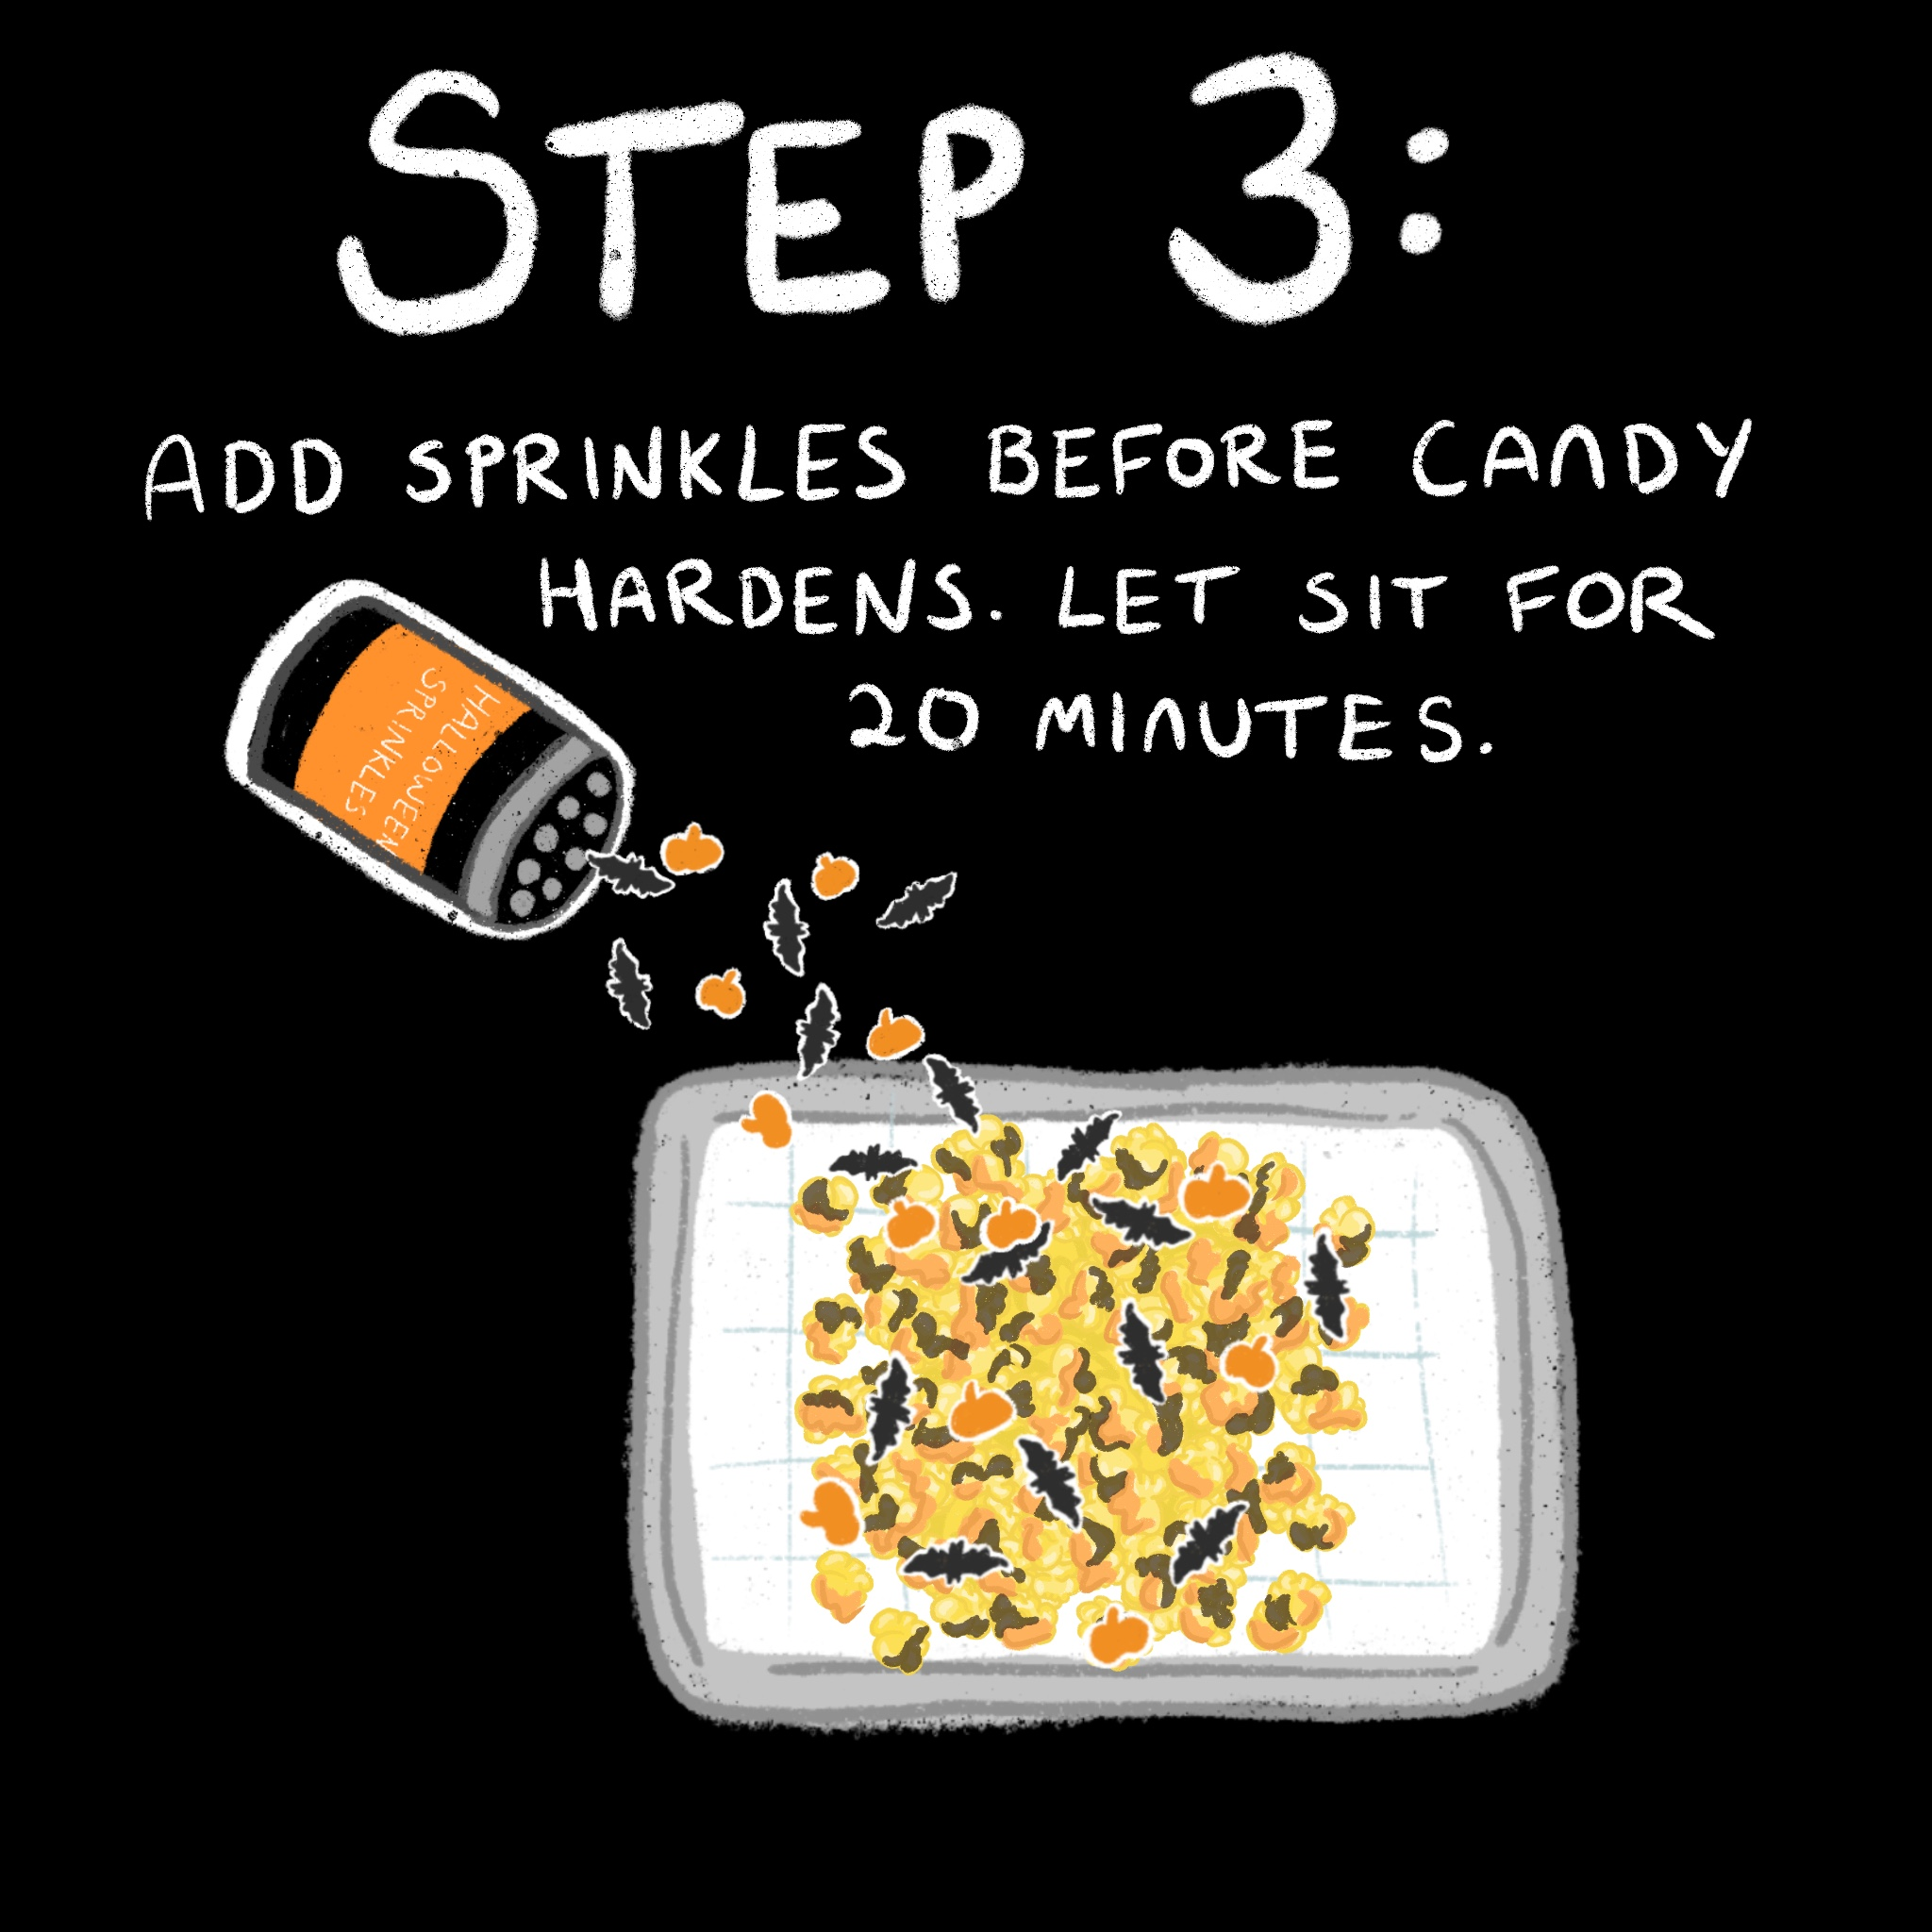 step three: add sprinkles before candy hardens. Let sit for 20 minutes.